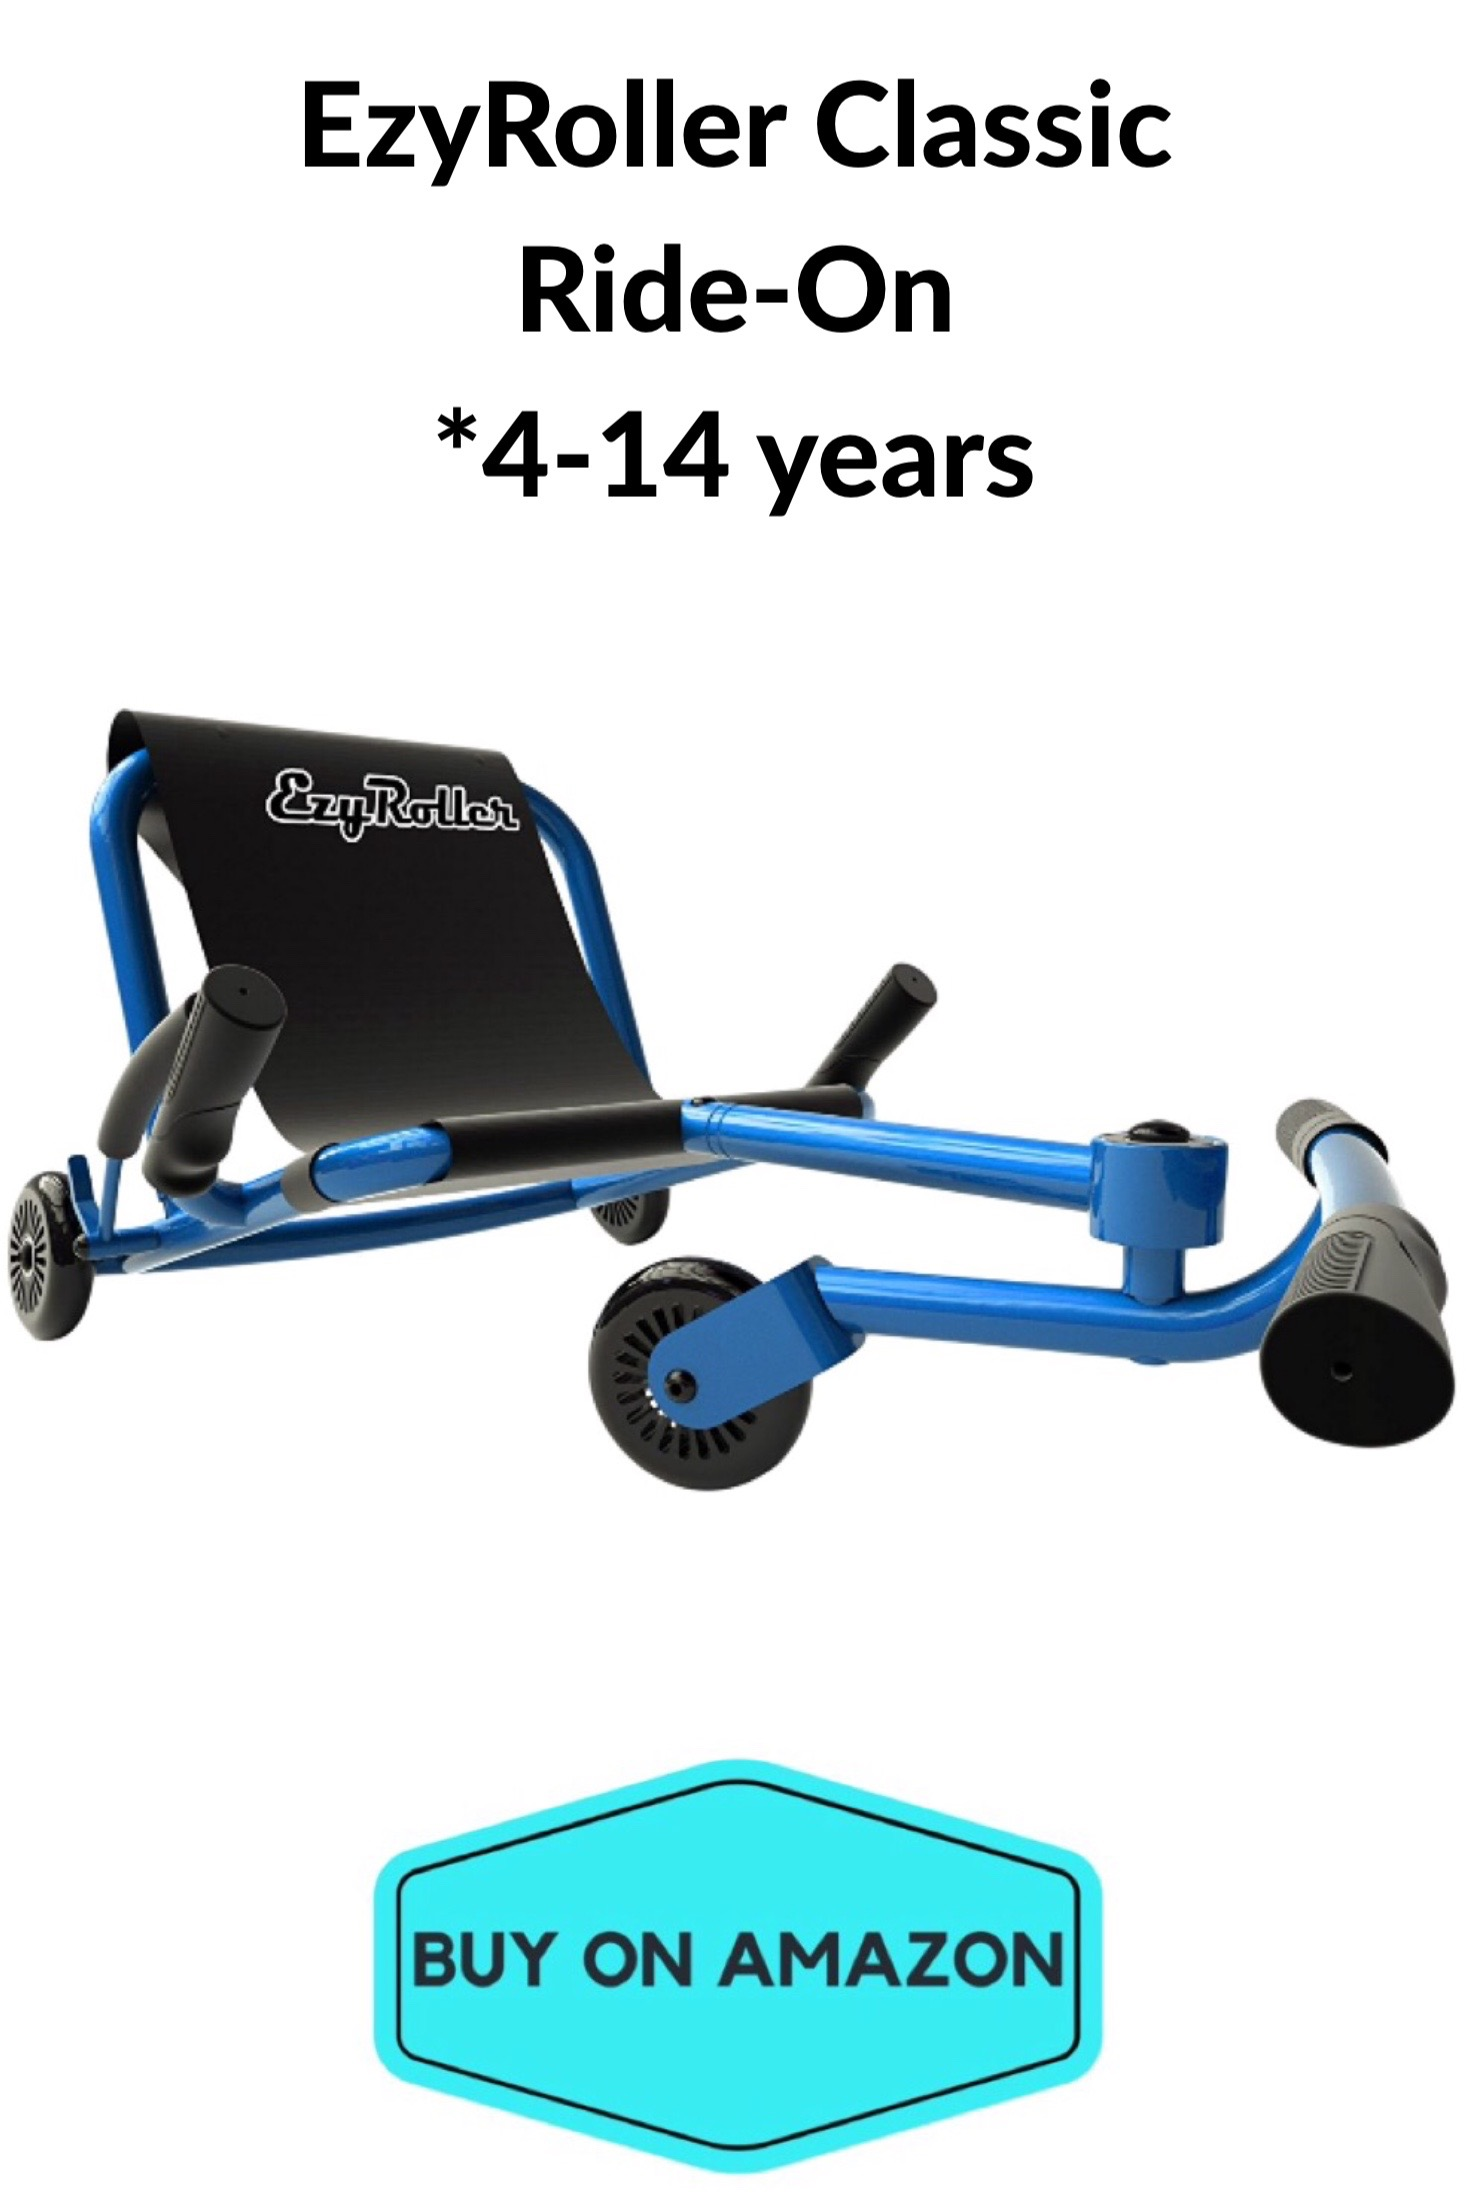 EzyRoller Classic Ride-On, Ages 4-14